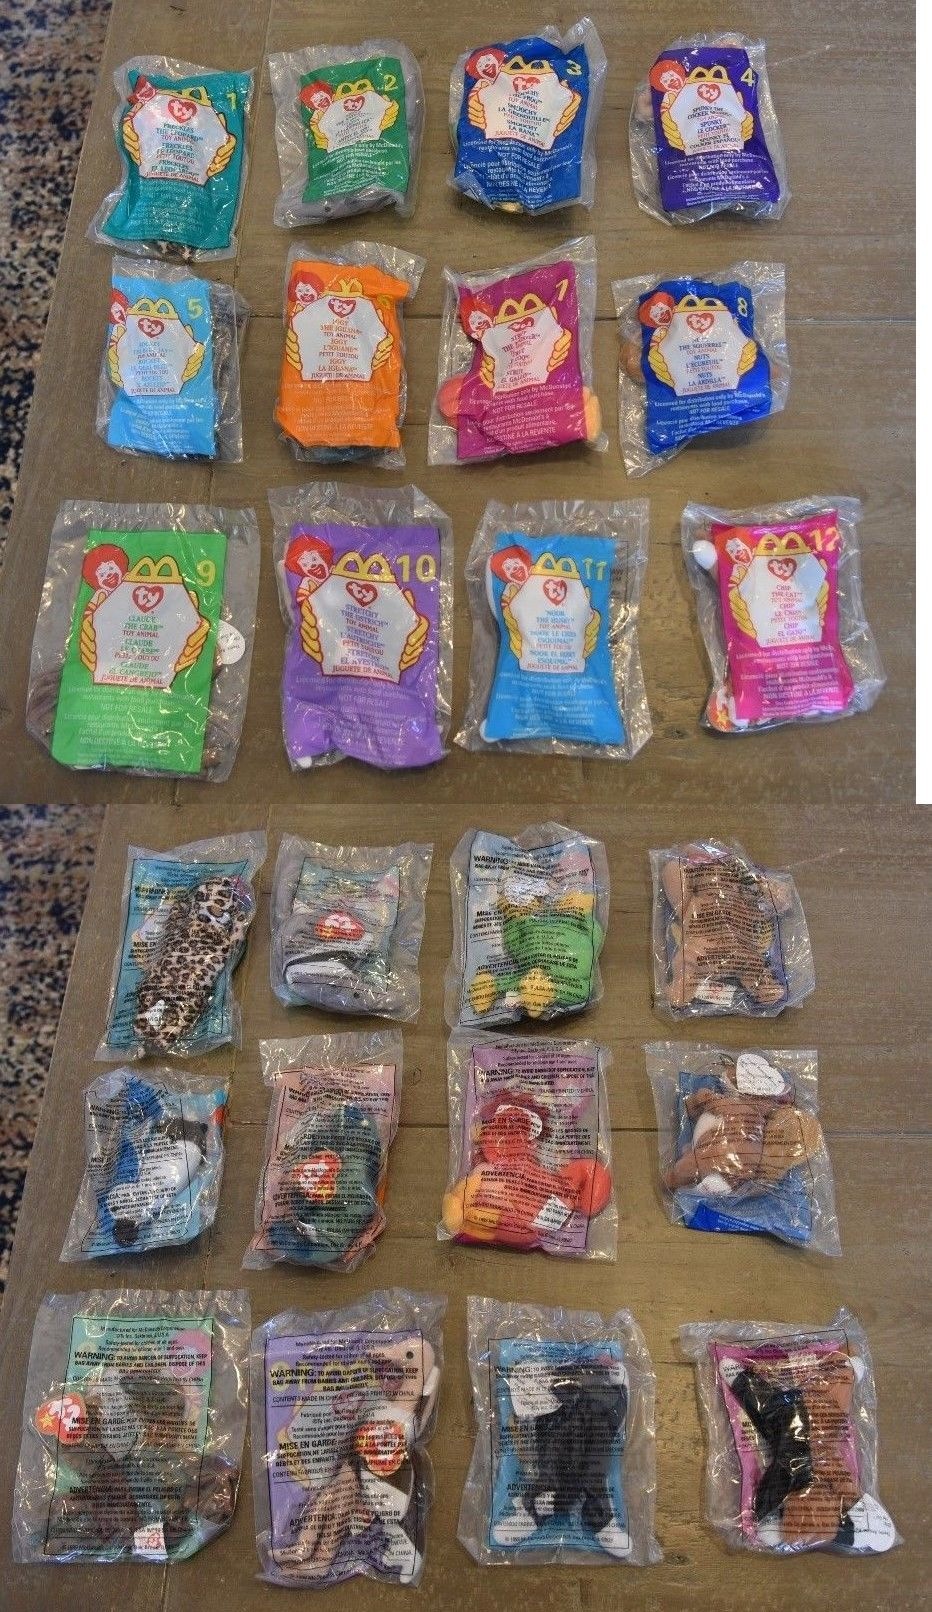 Beanie Babies-Original 19205  Unopened 1999 Mcdonalds Ty Teenie Beanie  Babies Complete Set Of 12 Lot Bundle -  BUY IT NOW ONLY   10 on  eBay   beanie ... 54bf7d9416e